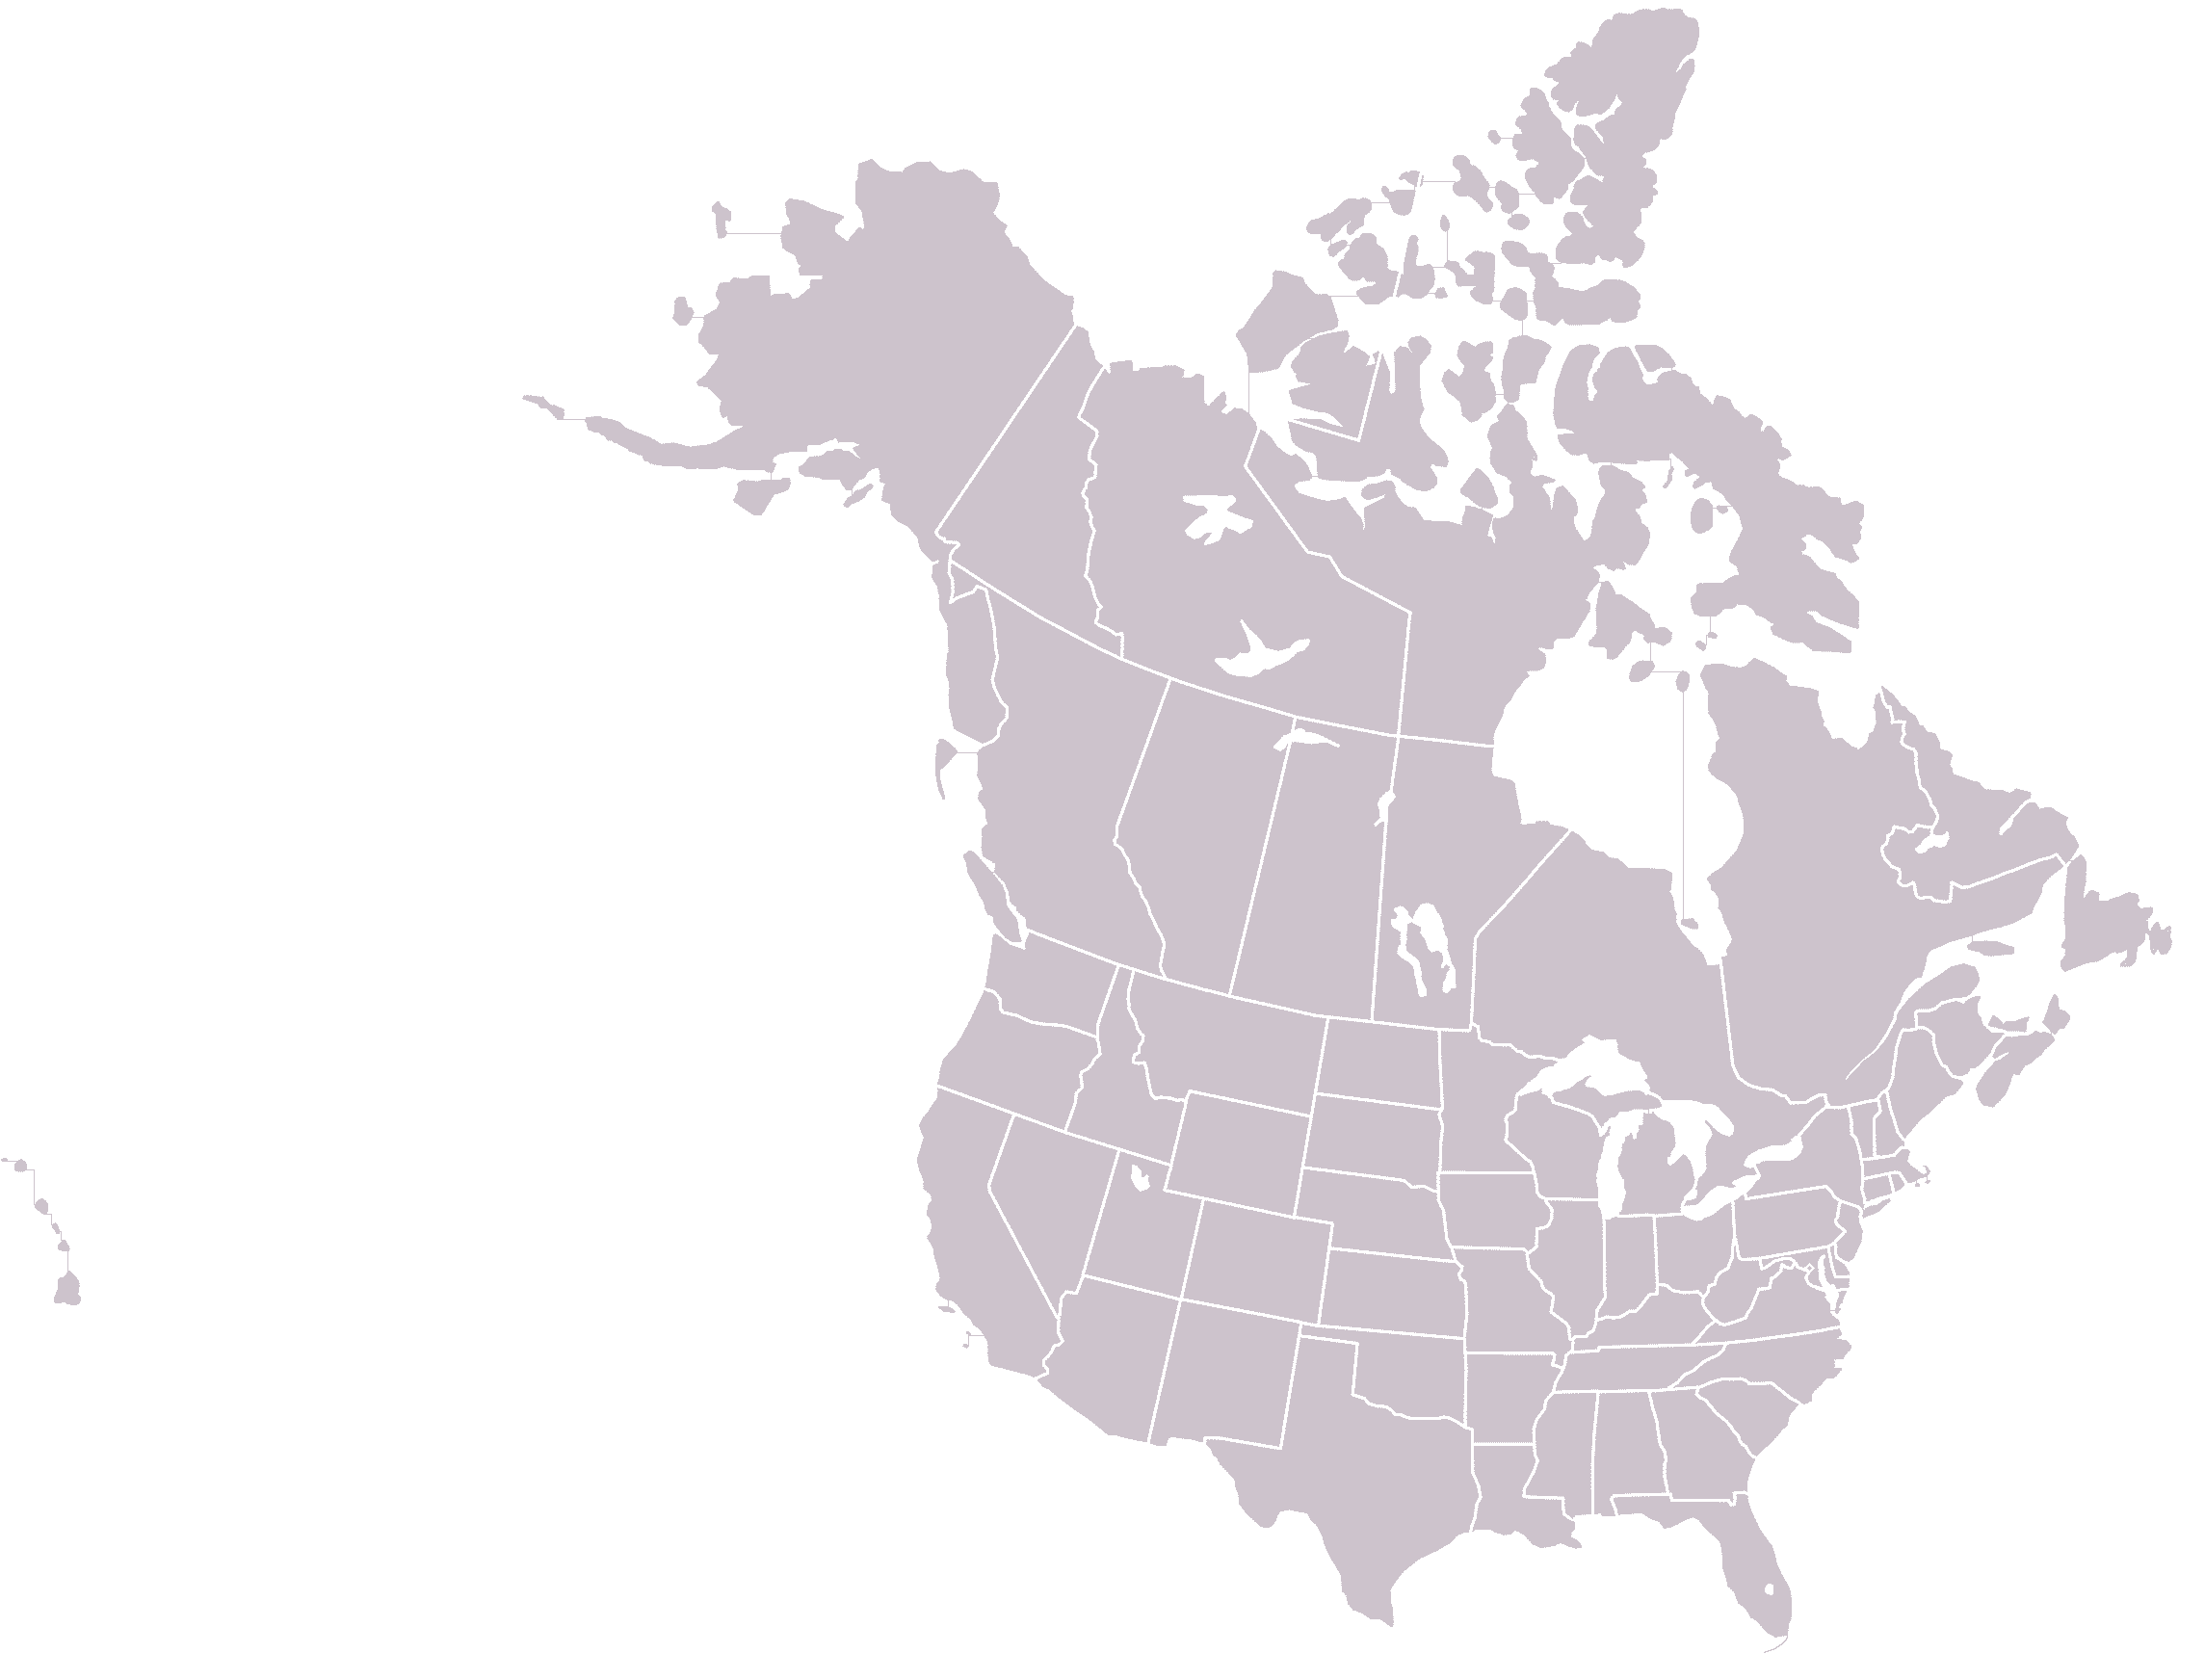 Map Of Usa States And Canada.File Blankmap Usa States Canada Provinces Png Wikimedia Commons